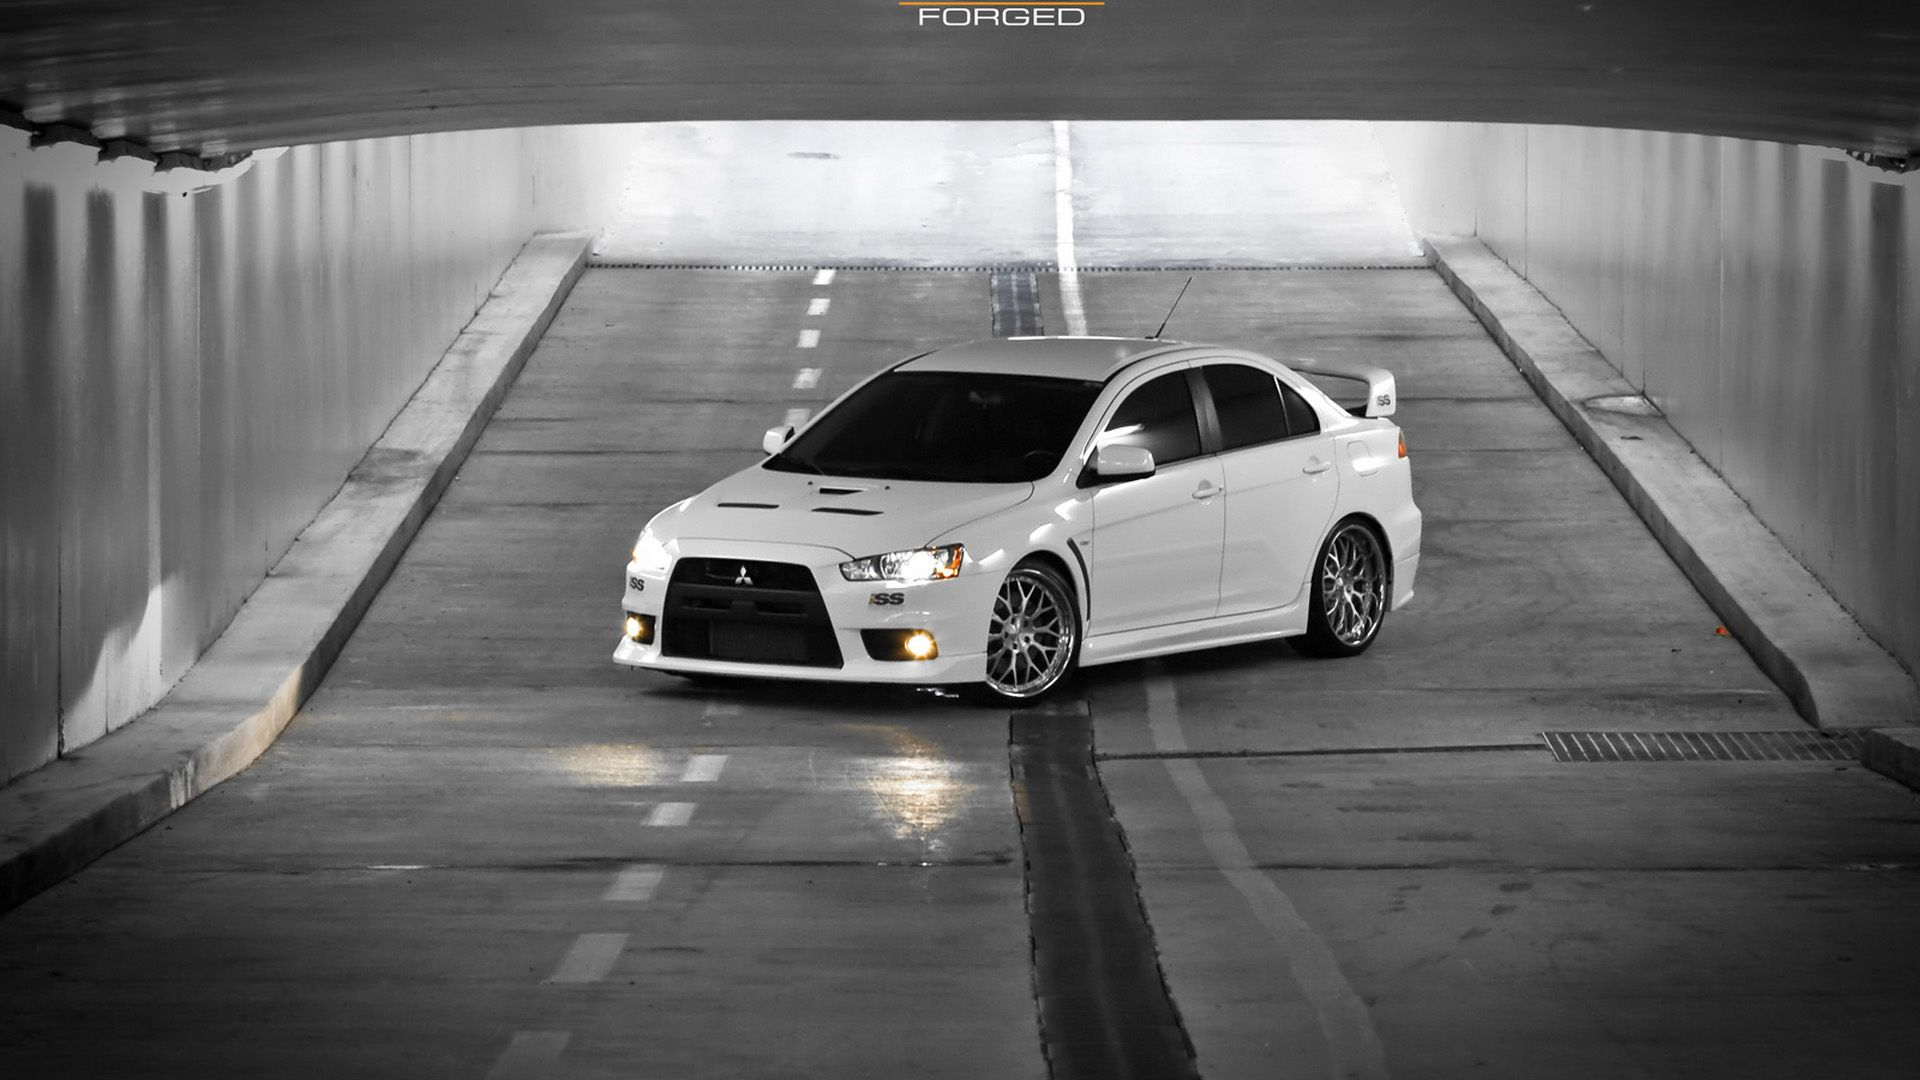 Evo 10 Wallpaper Mitsubishi Lancer Evo X Wallpaper The Motor Pinterest